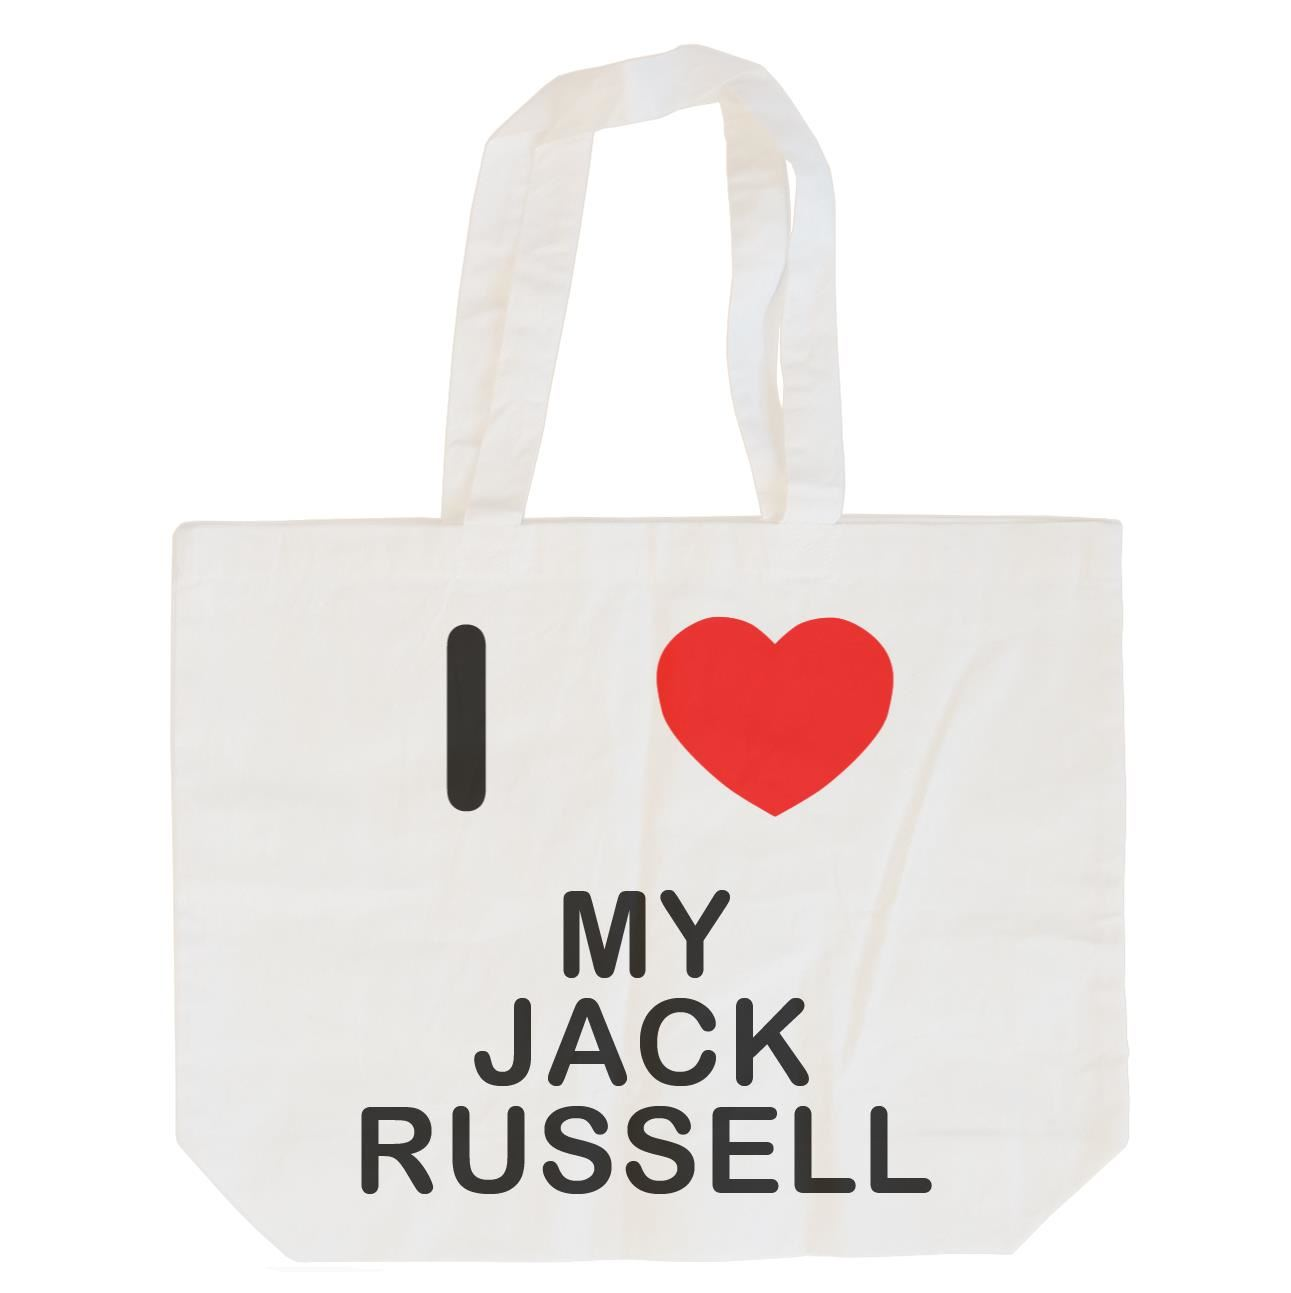 I Love My Jack Russell - Cotton Bag | Size choice Tote, Shopper or Sling